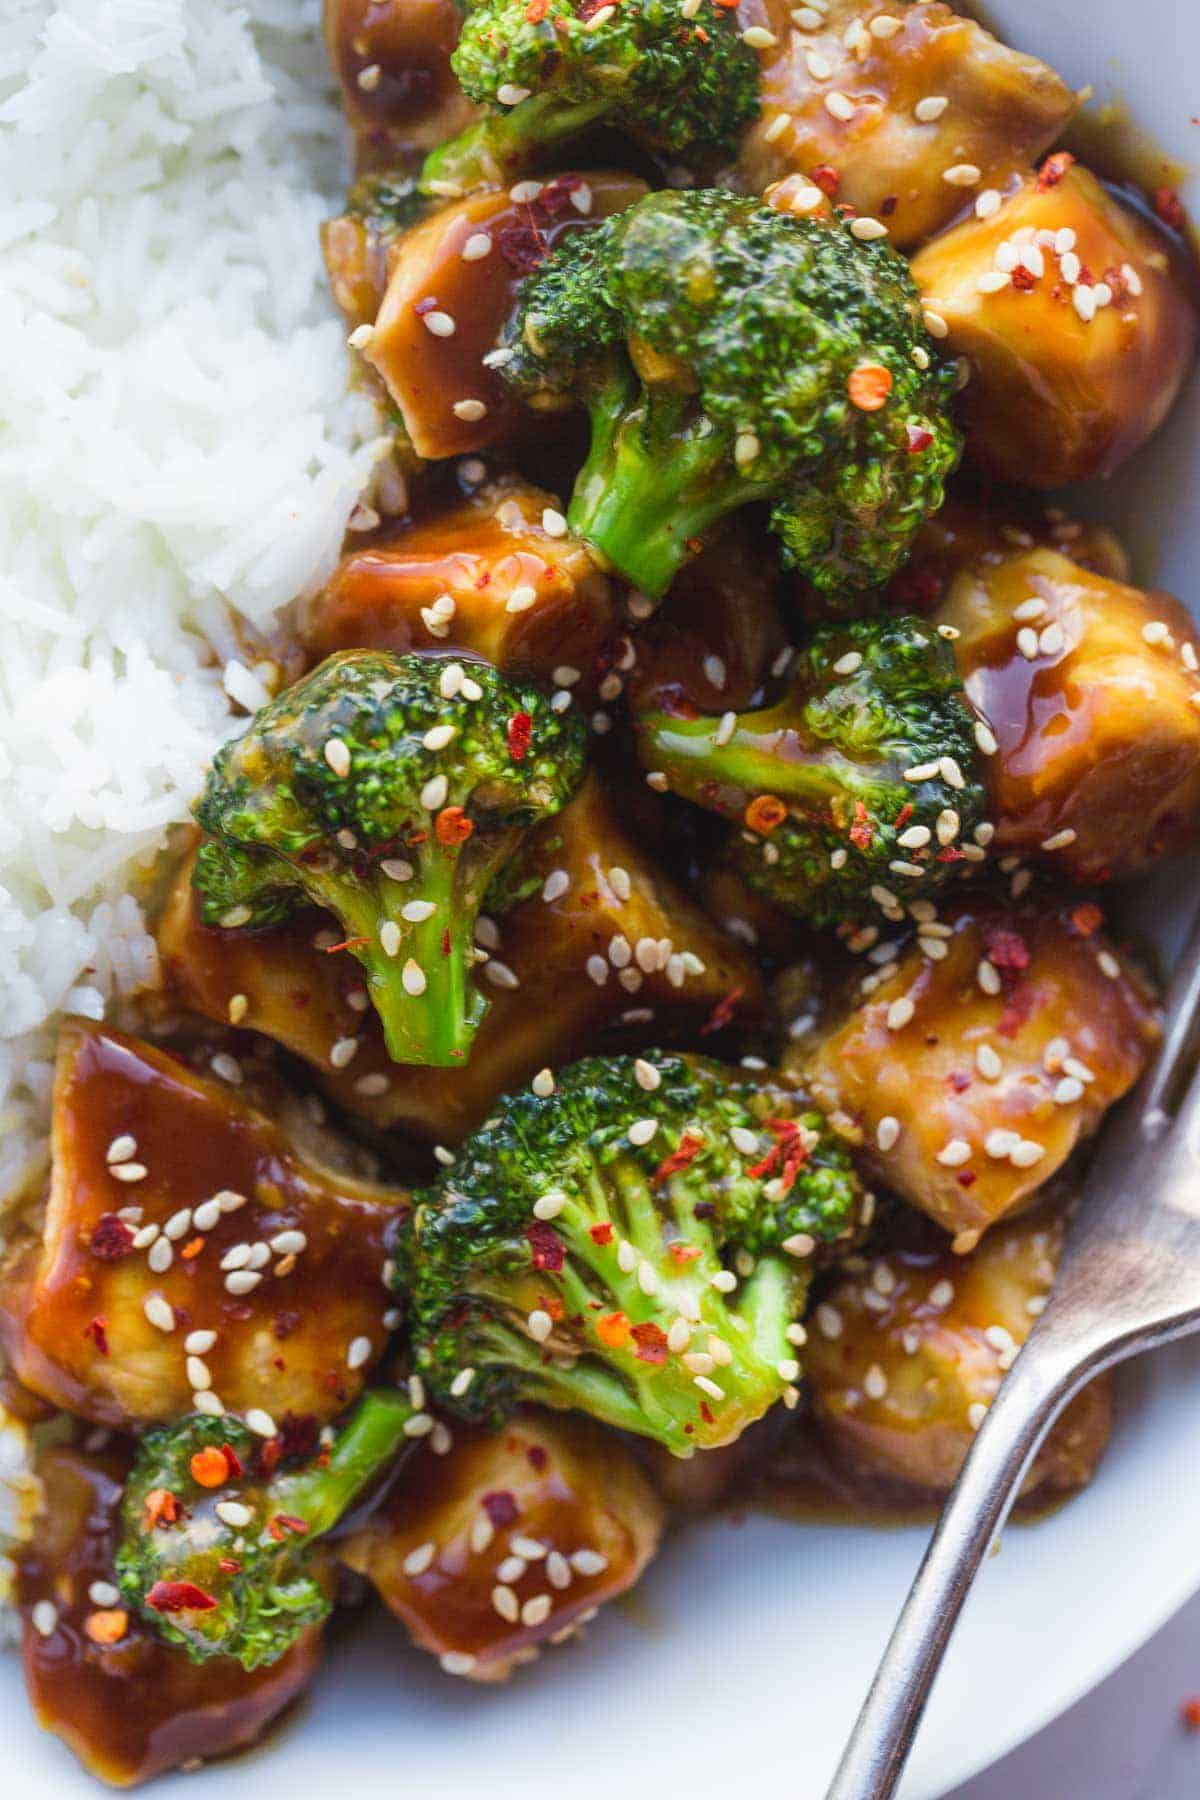 Instant Pot Chinese Chicken and broccoli - close up shot